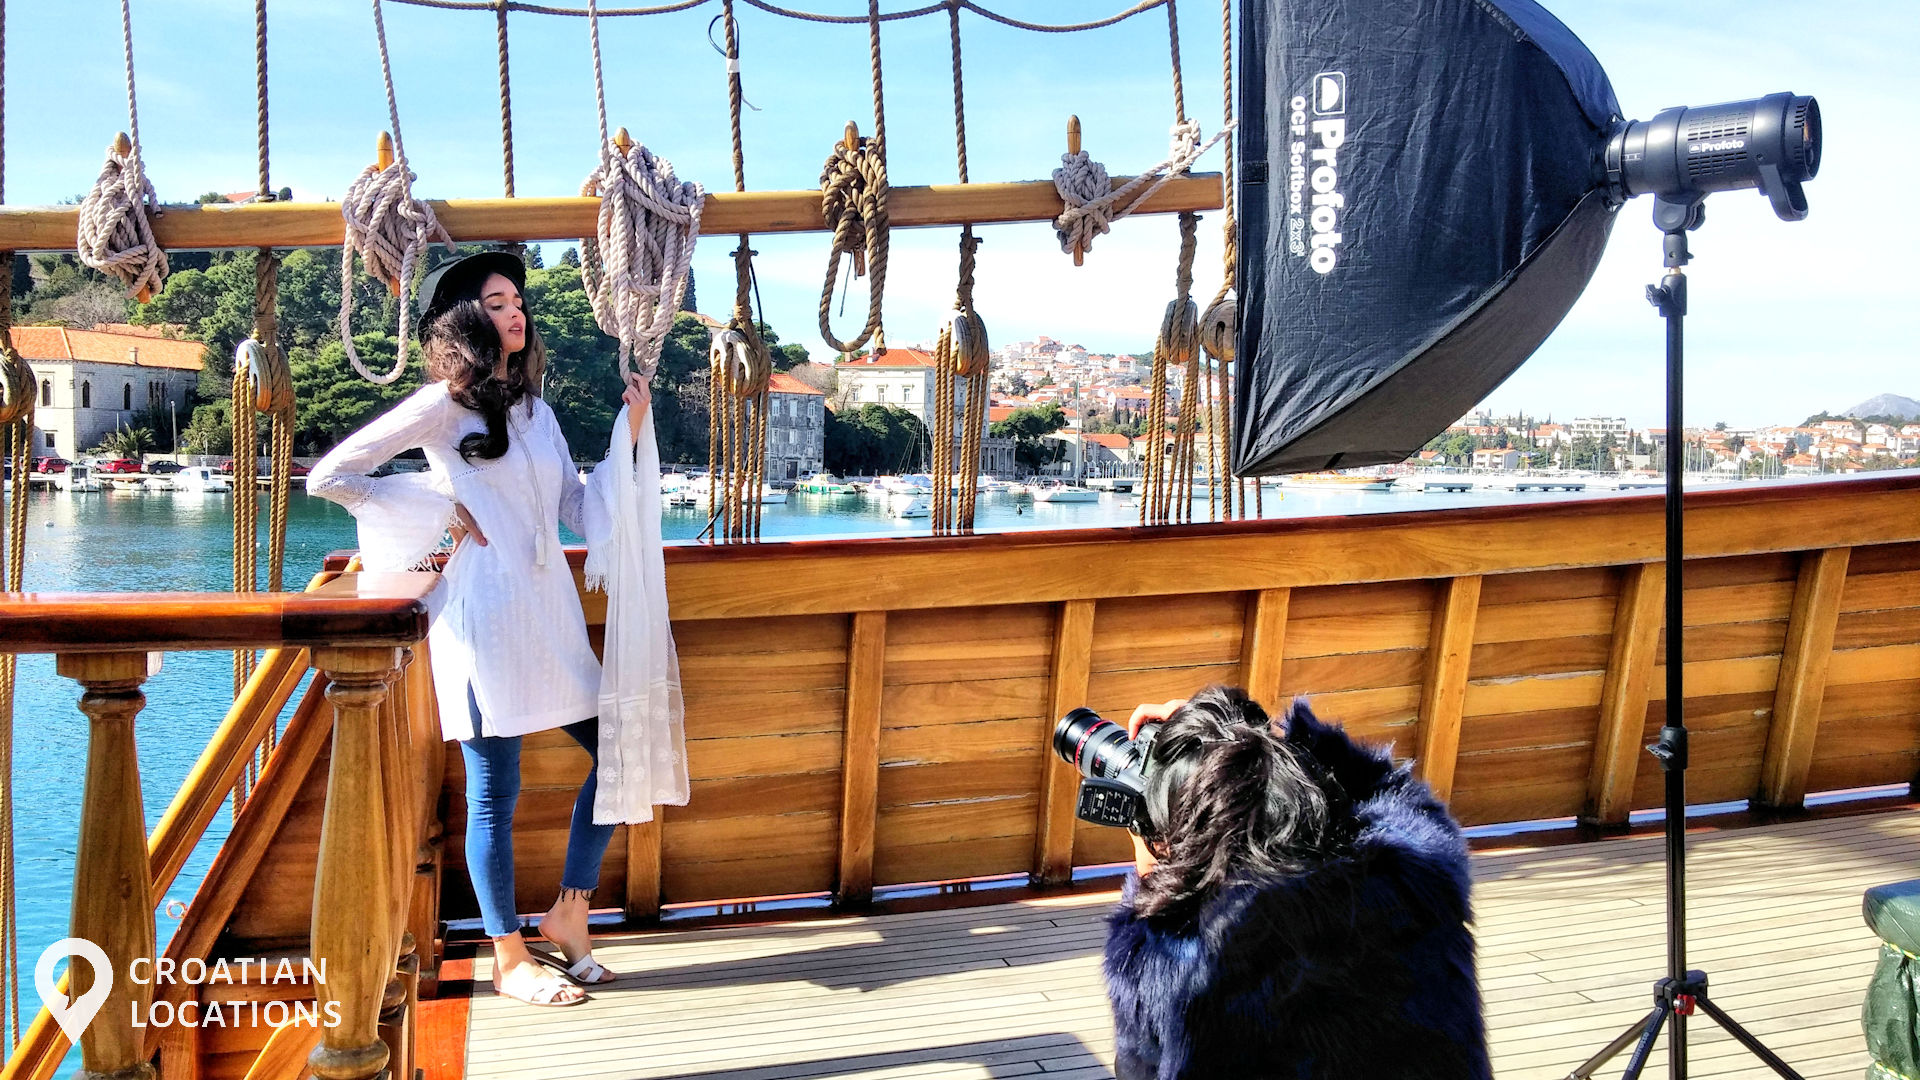 The Croatian Locations team will provide everything you need for your photo shoot in Croatia